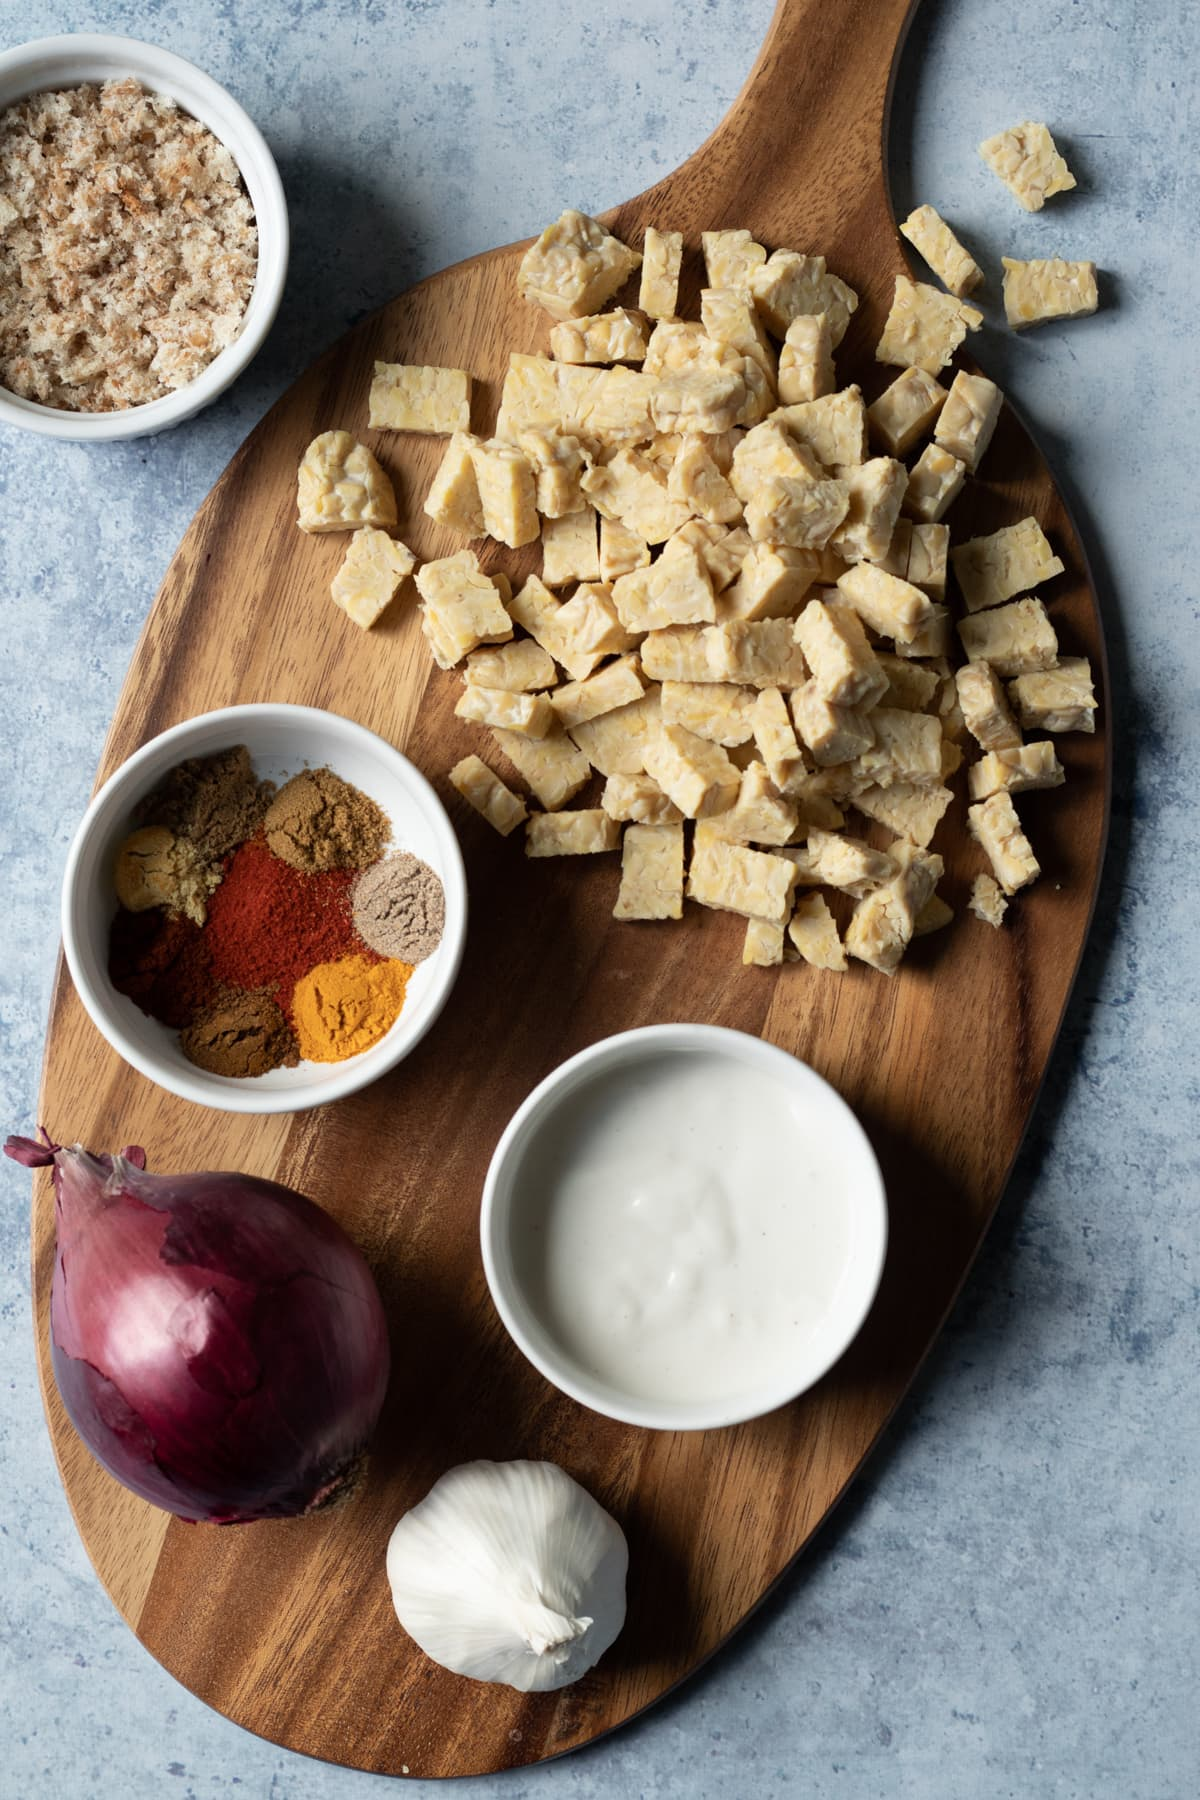 ingredients laid out on a wooden board - tempeh, onion, spices, yogurt, garlic, breadcrumbs